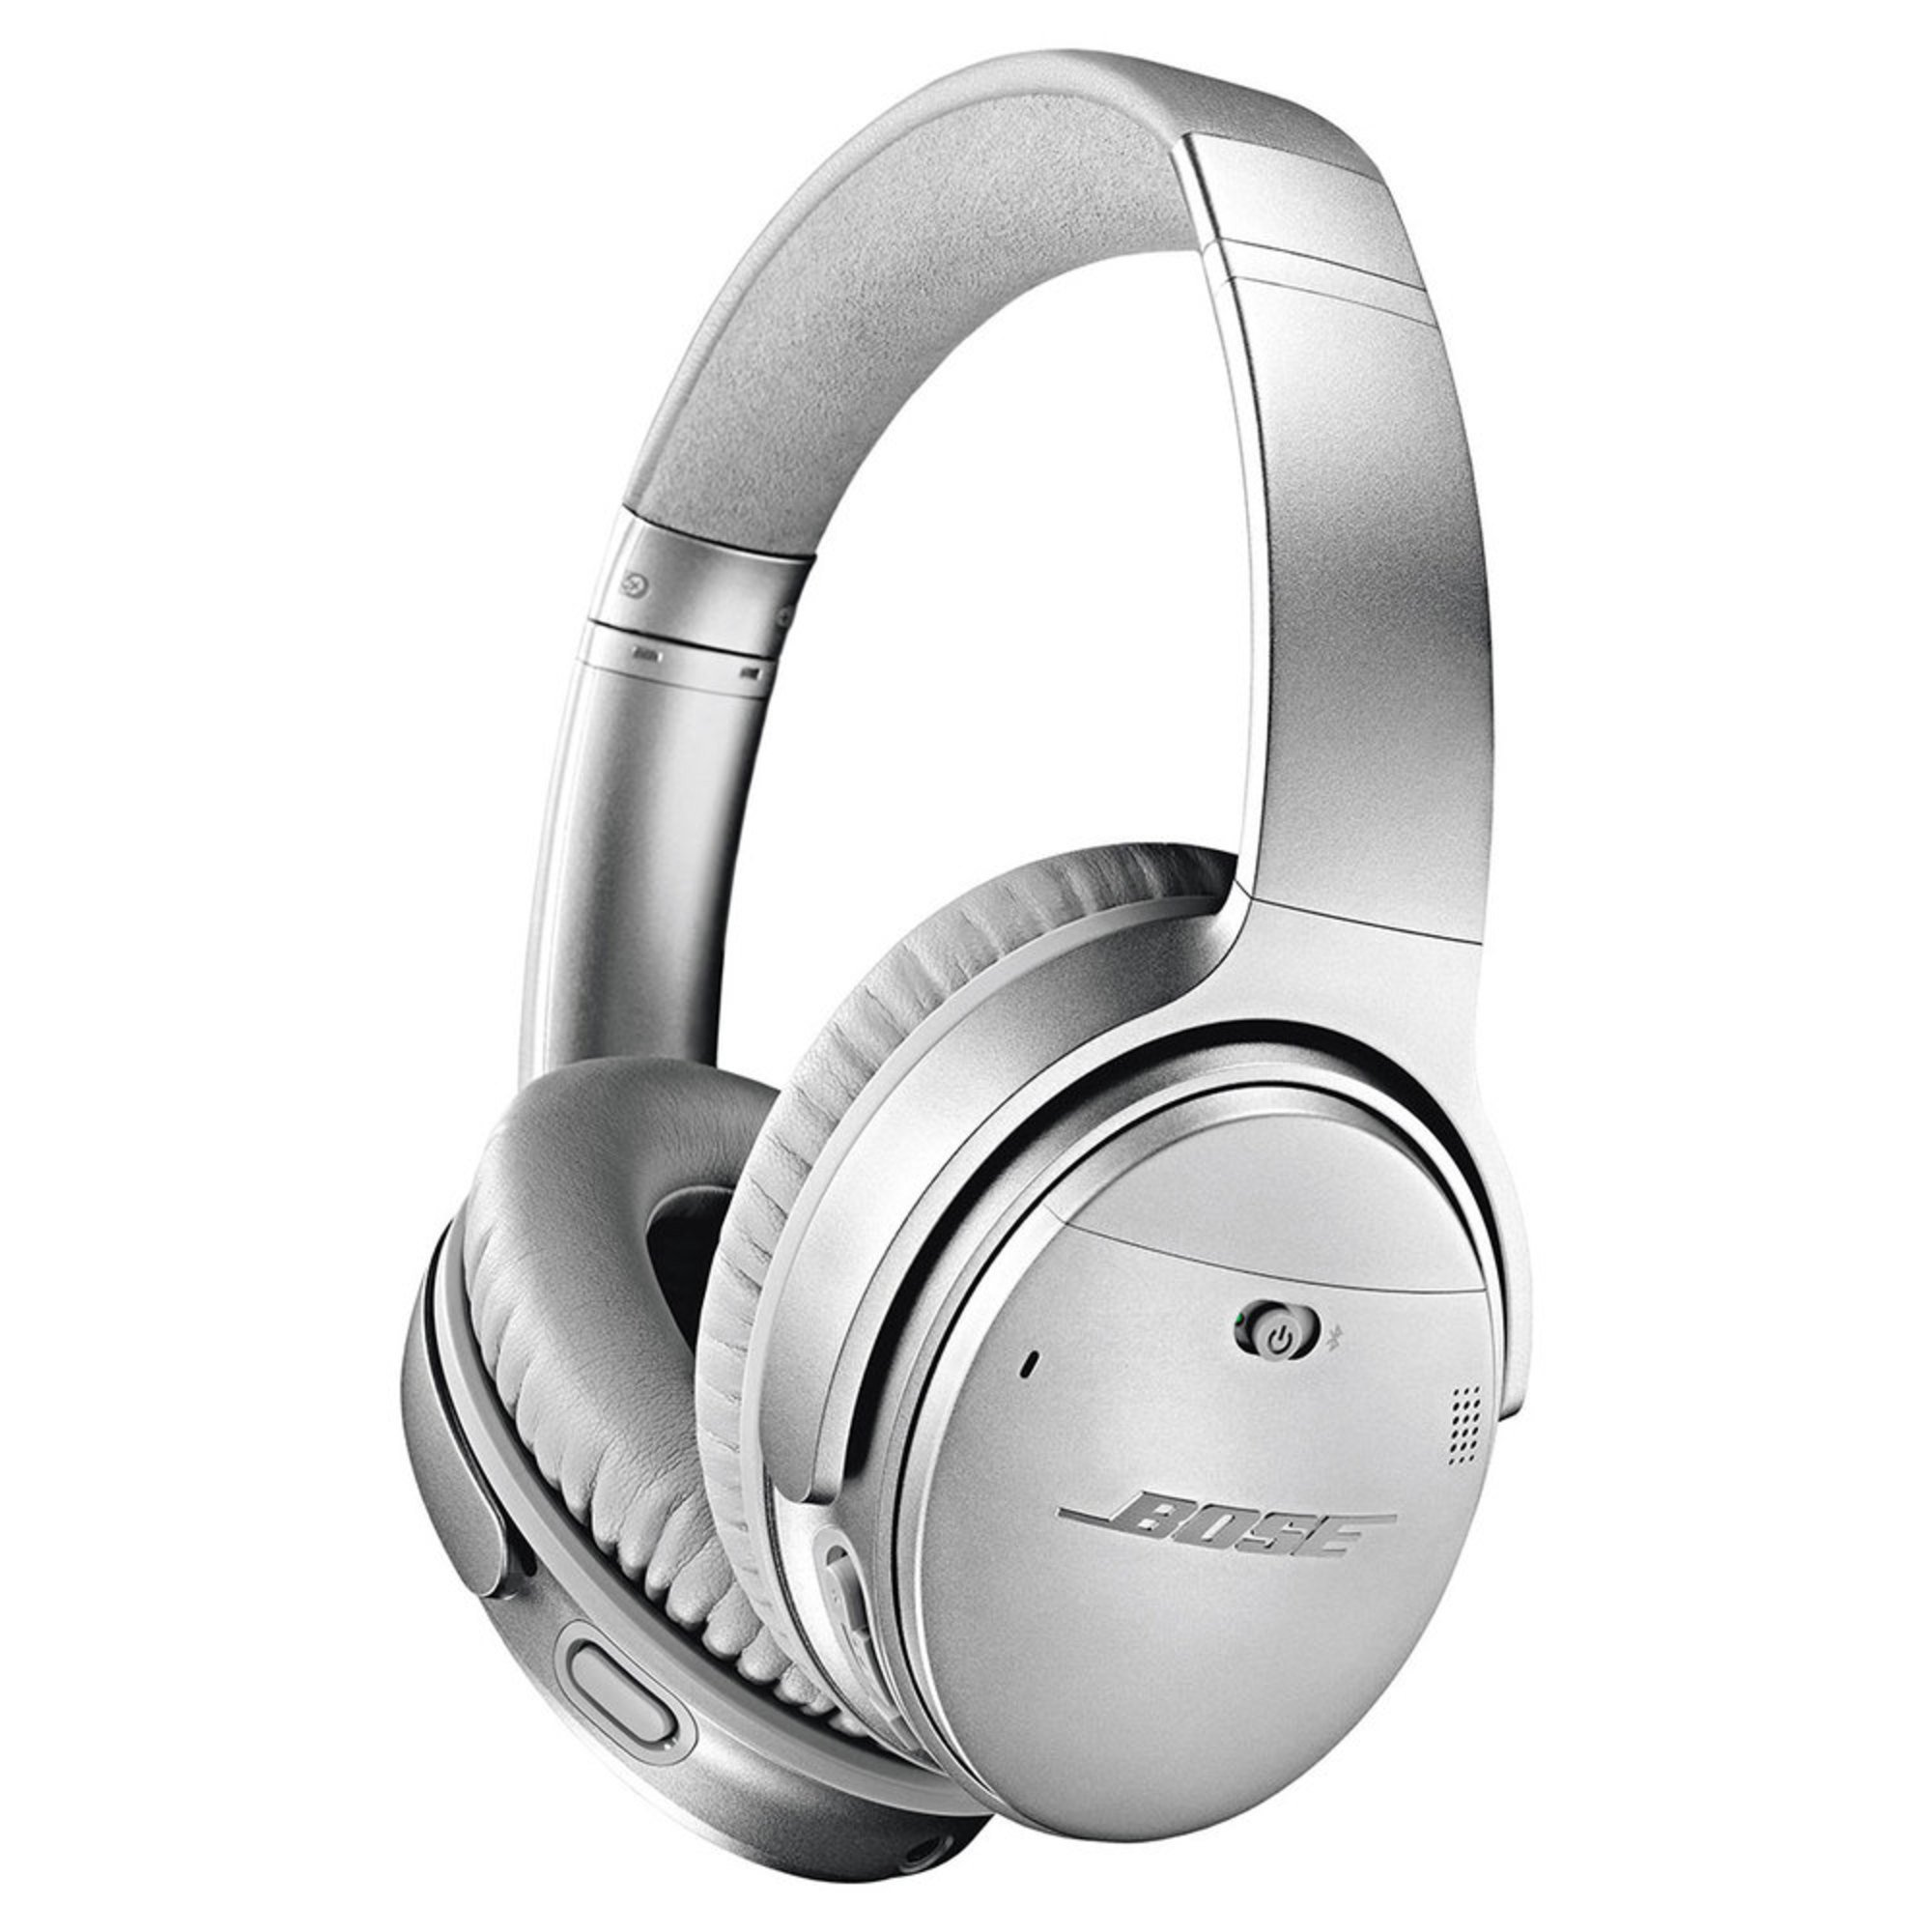 e7af5e5363e Bose Qc35 Wireless Headphones Silver | Over-ear Headphones ...